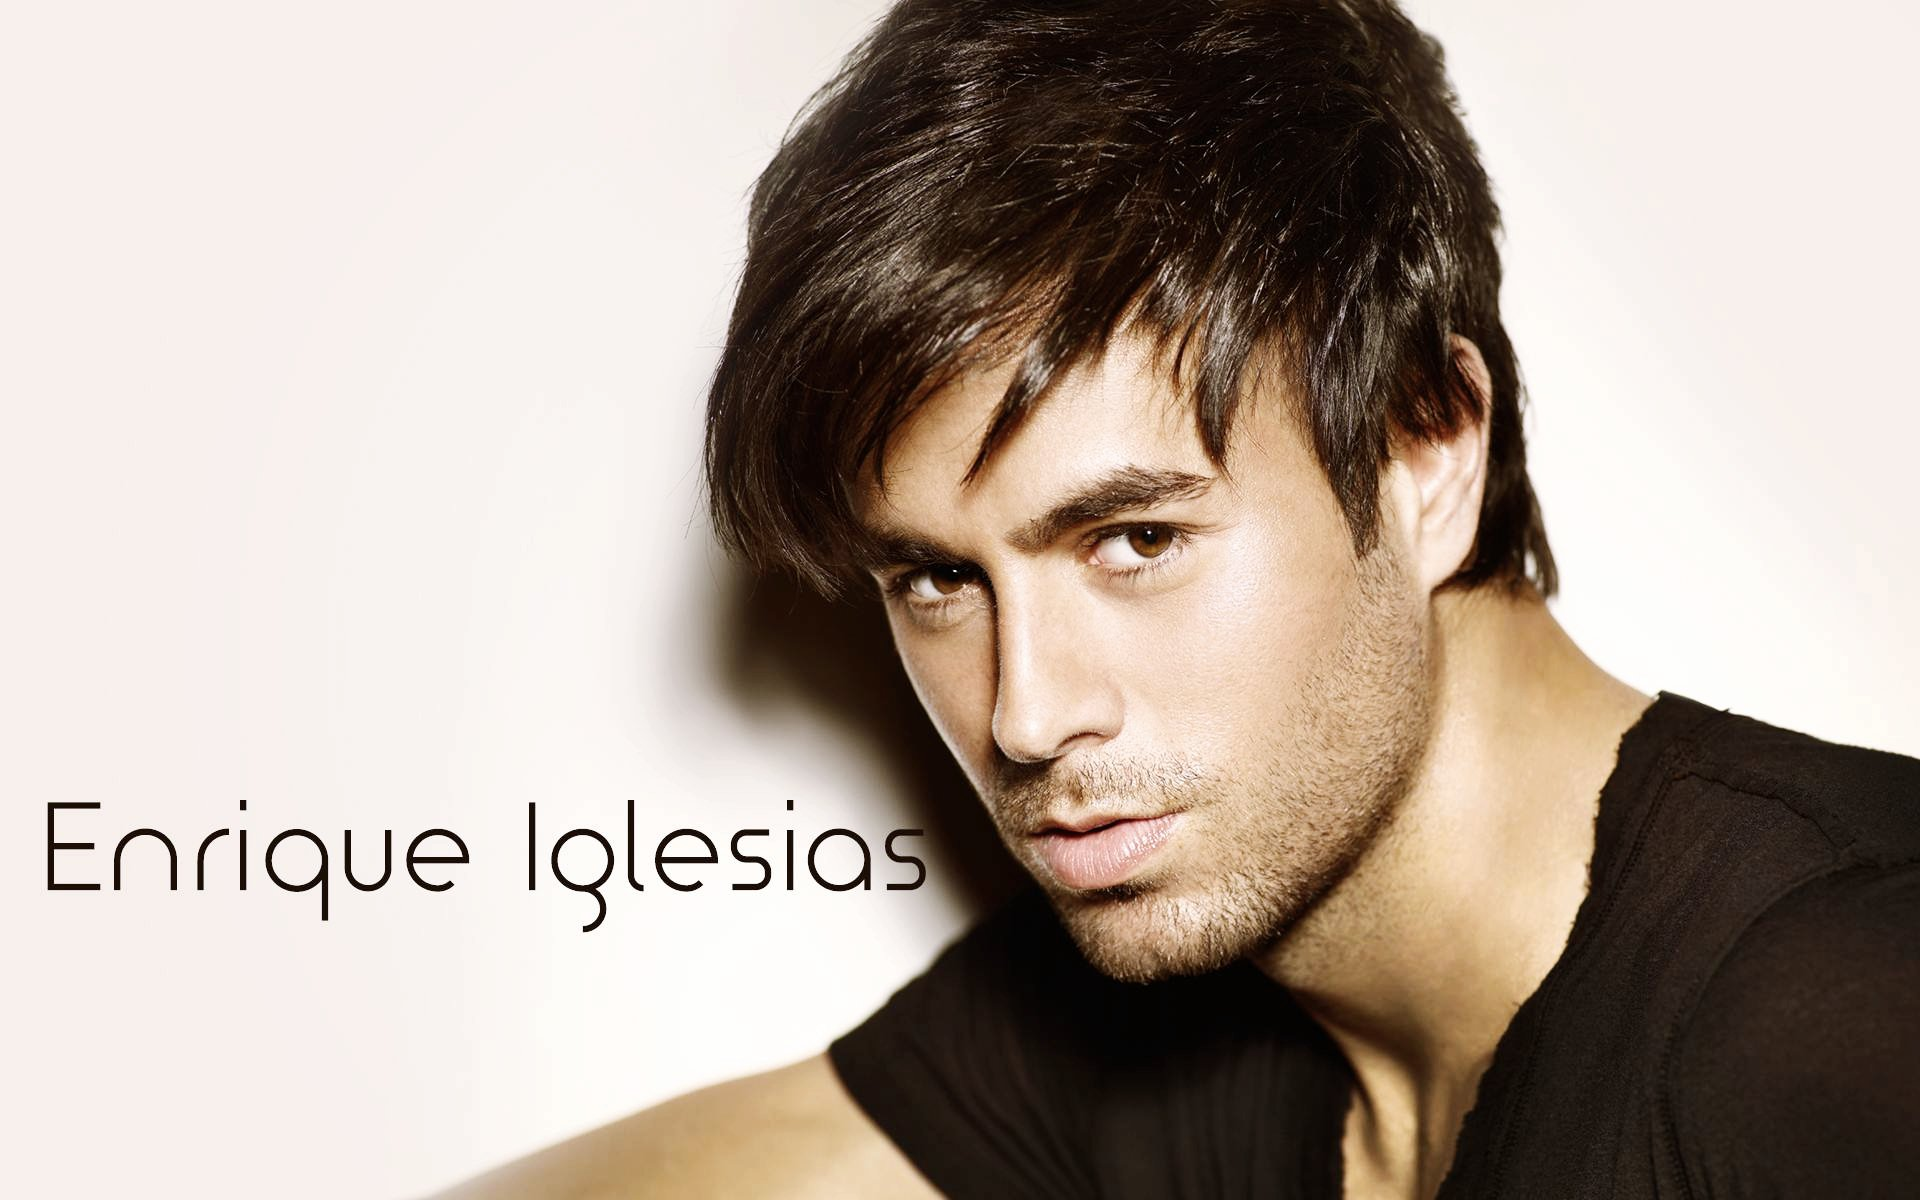 Enrique Iglesias Wallpapers | HD Wallpapers of debonair ...